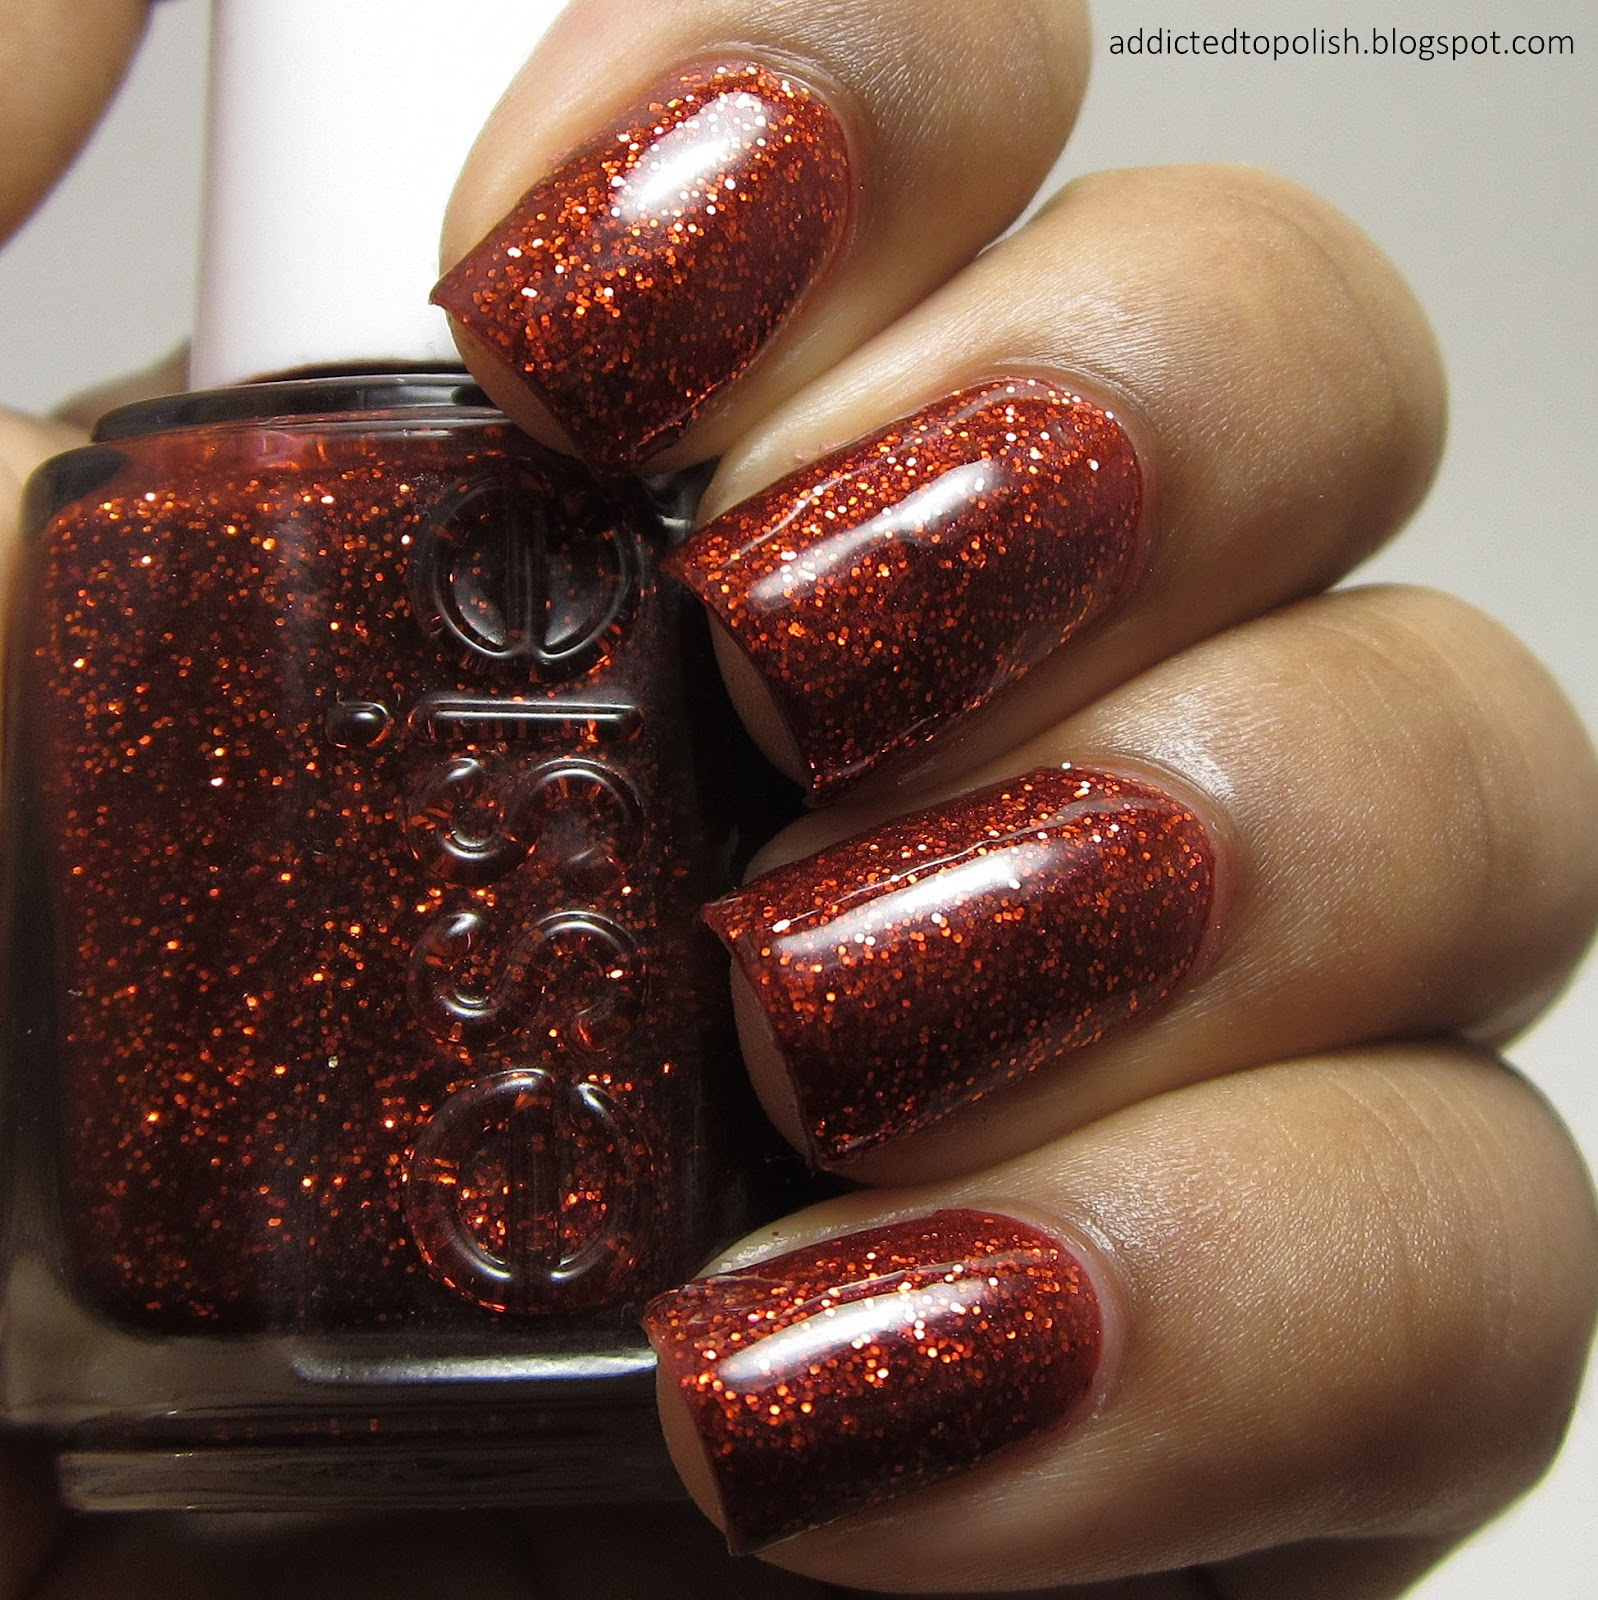 Essie-Ruby-Slipper-Red-Glitter-Nai-Polish